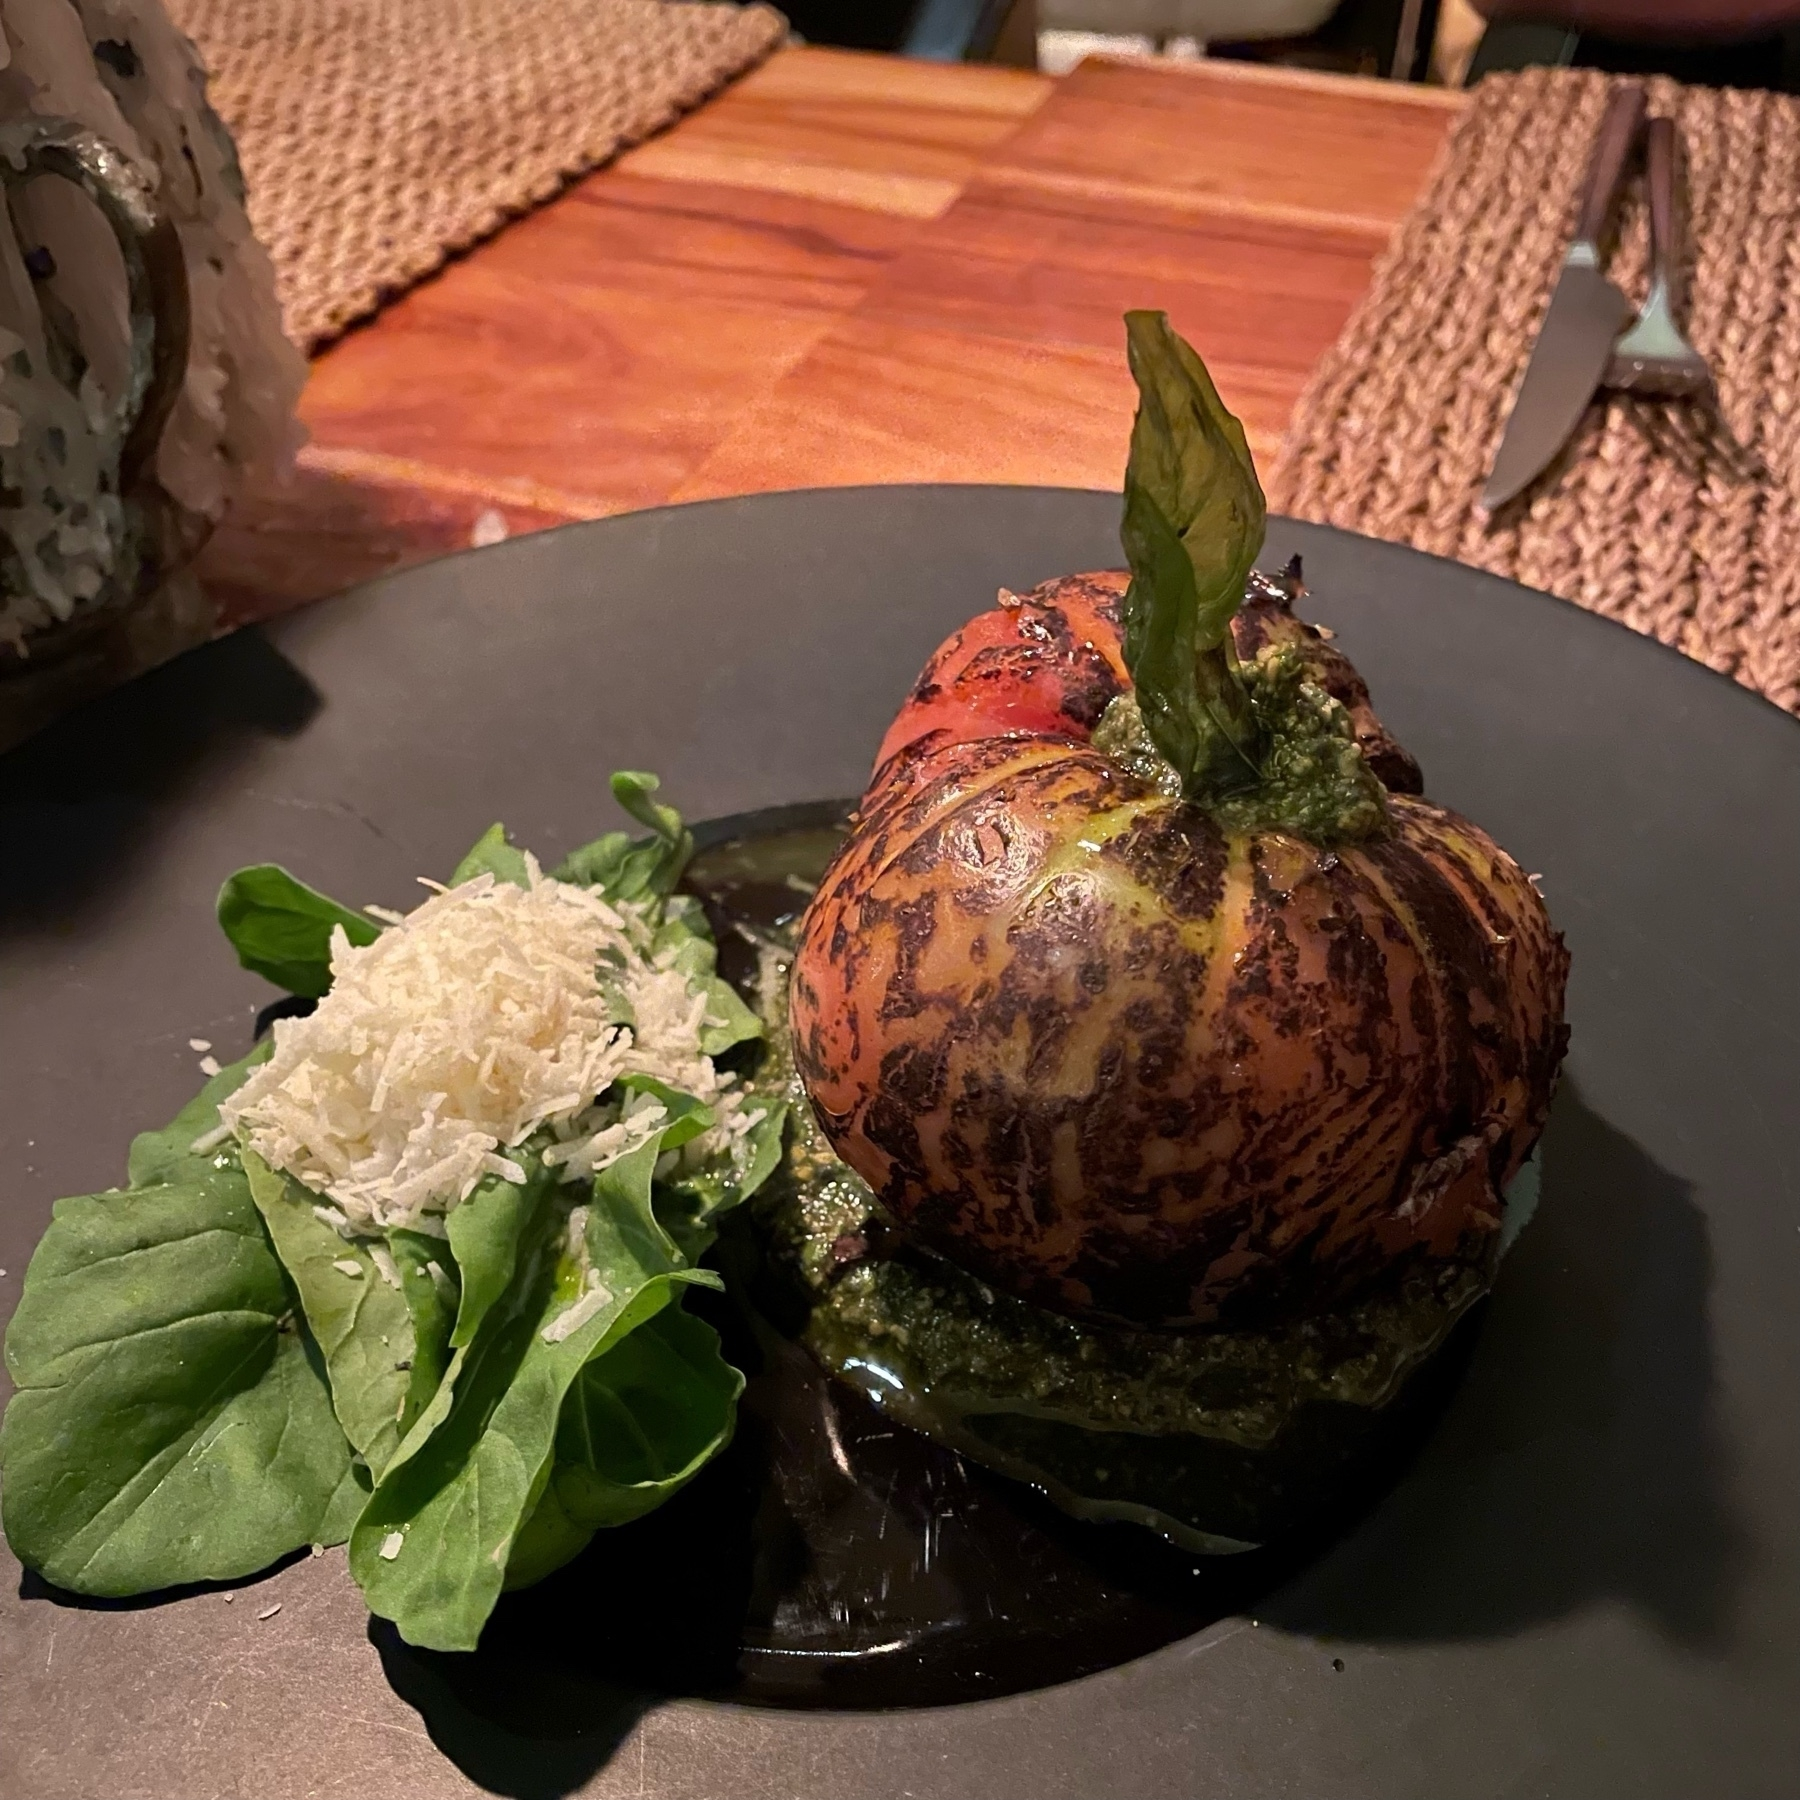 A large heirloom tomato beside a stack of basil leaves with some parm